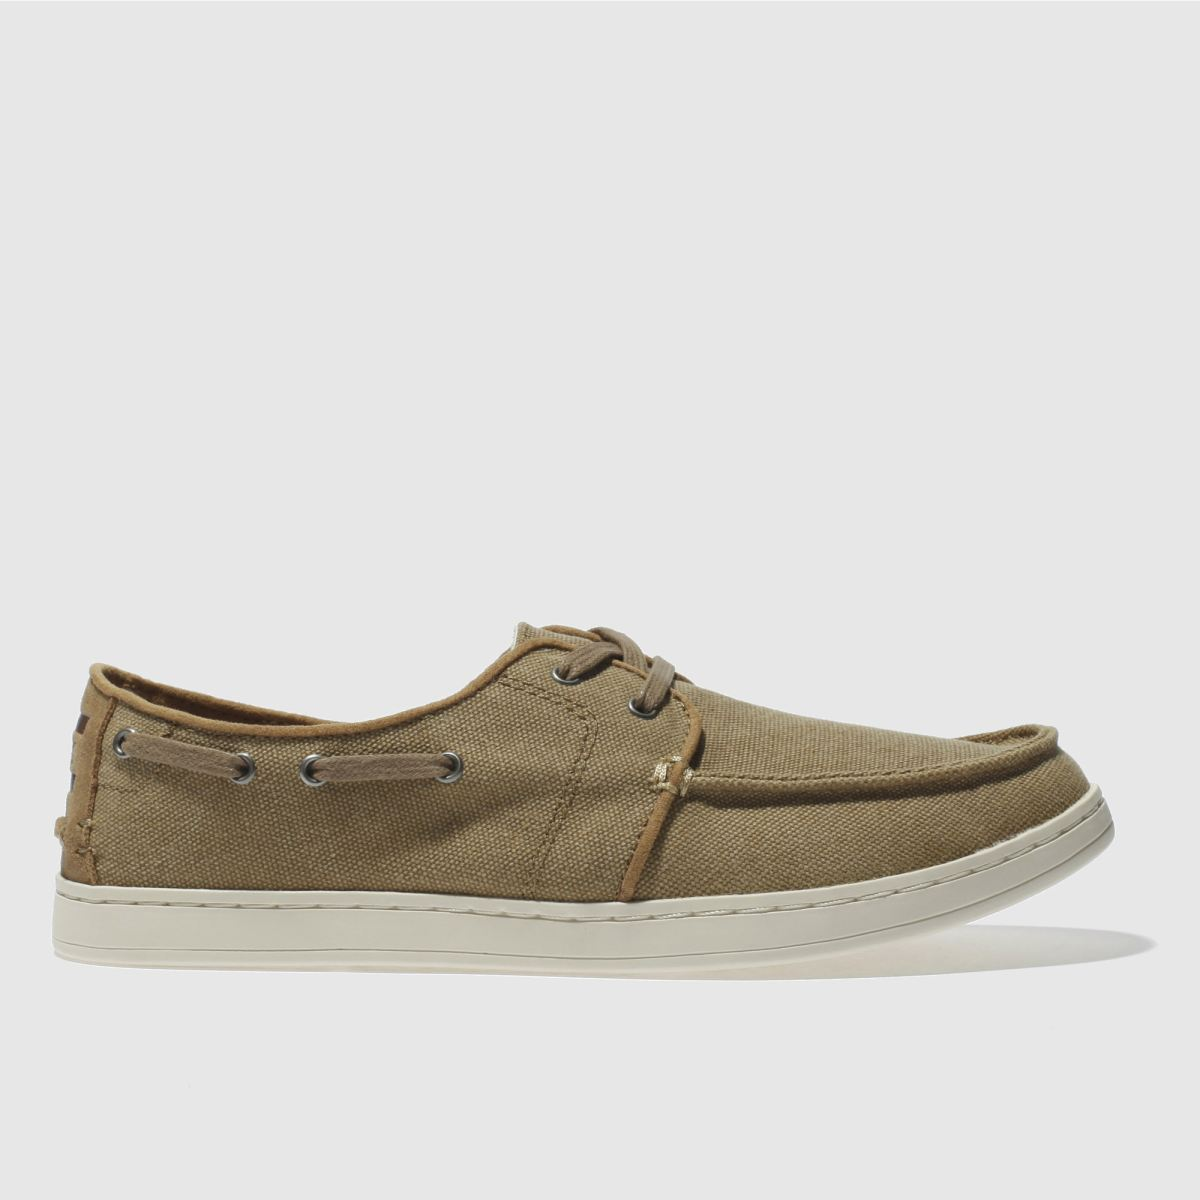 Toms Tan Culver Lace Up Shoes